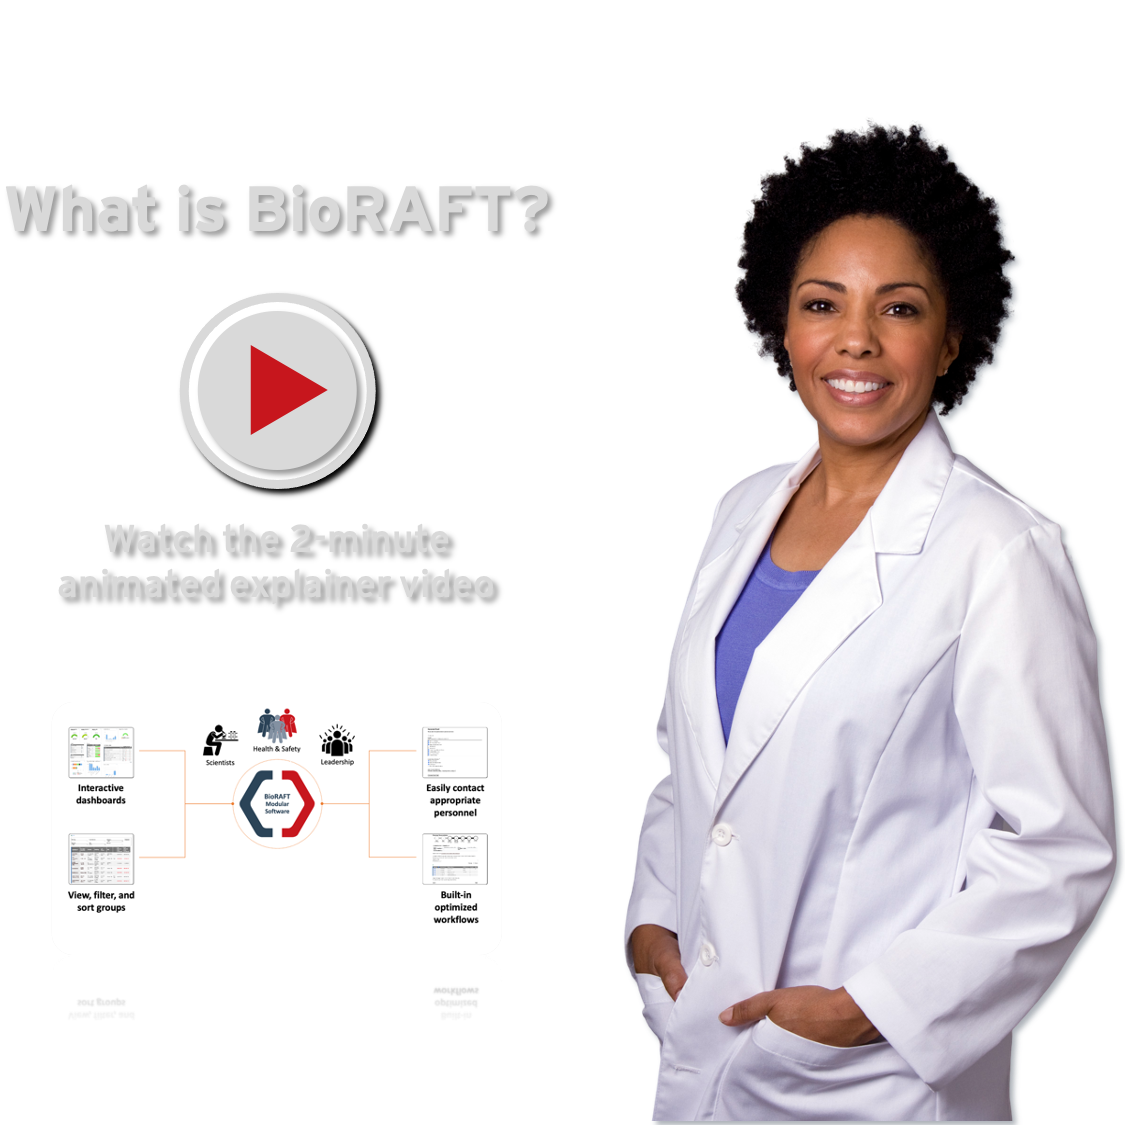 Explainer Video - What is BioRAFT?